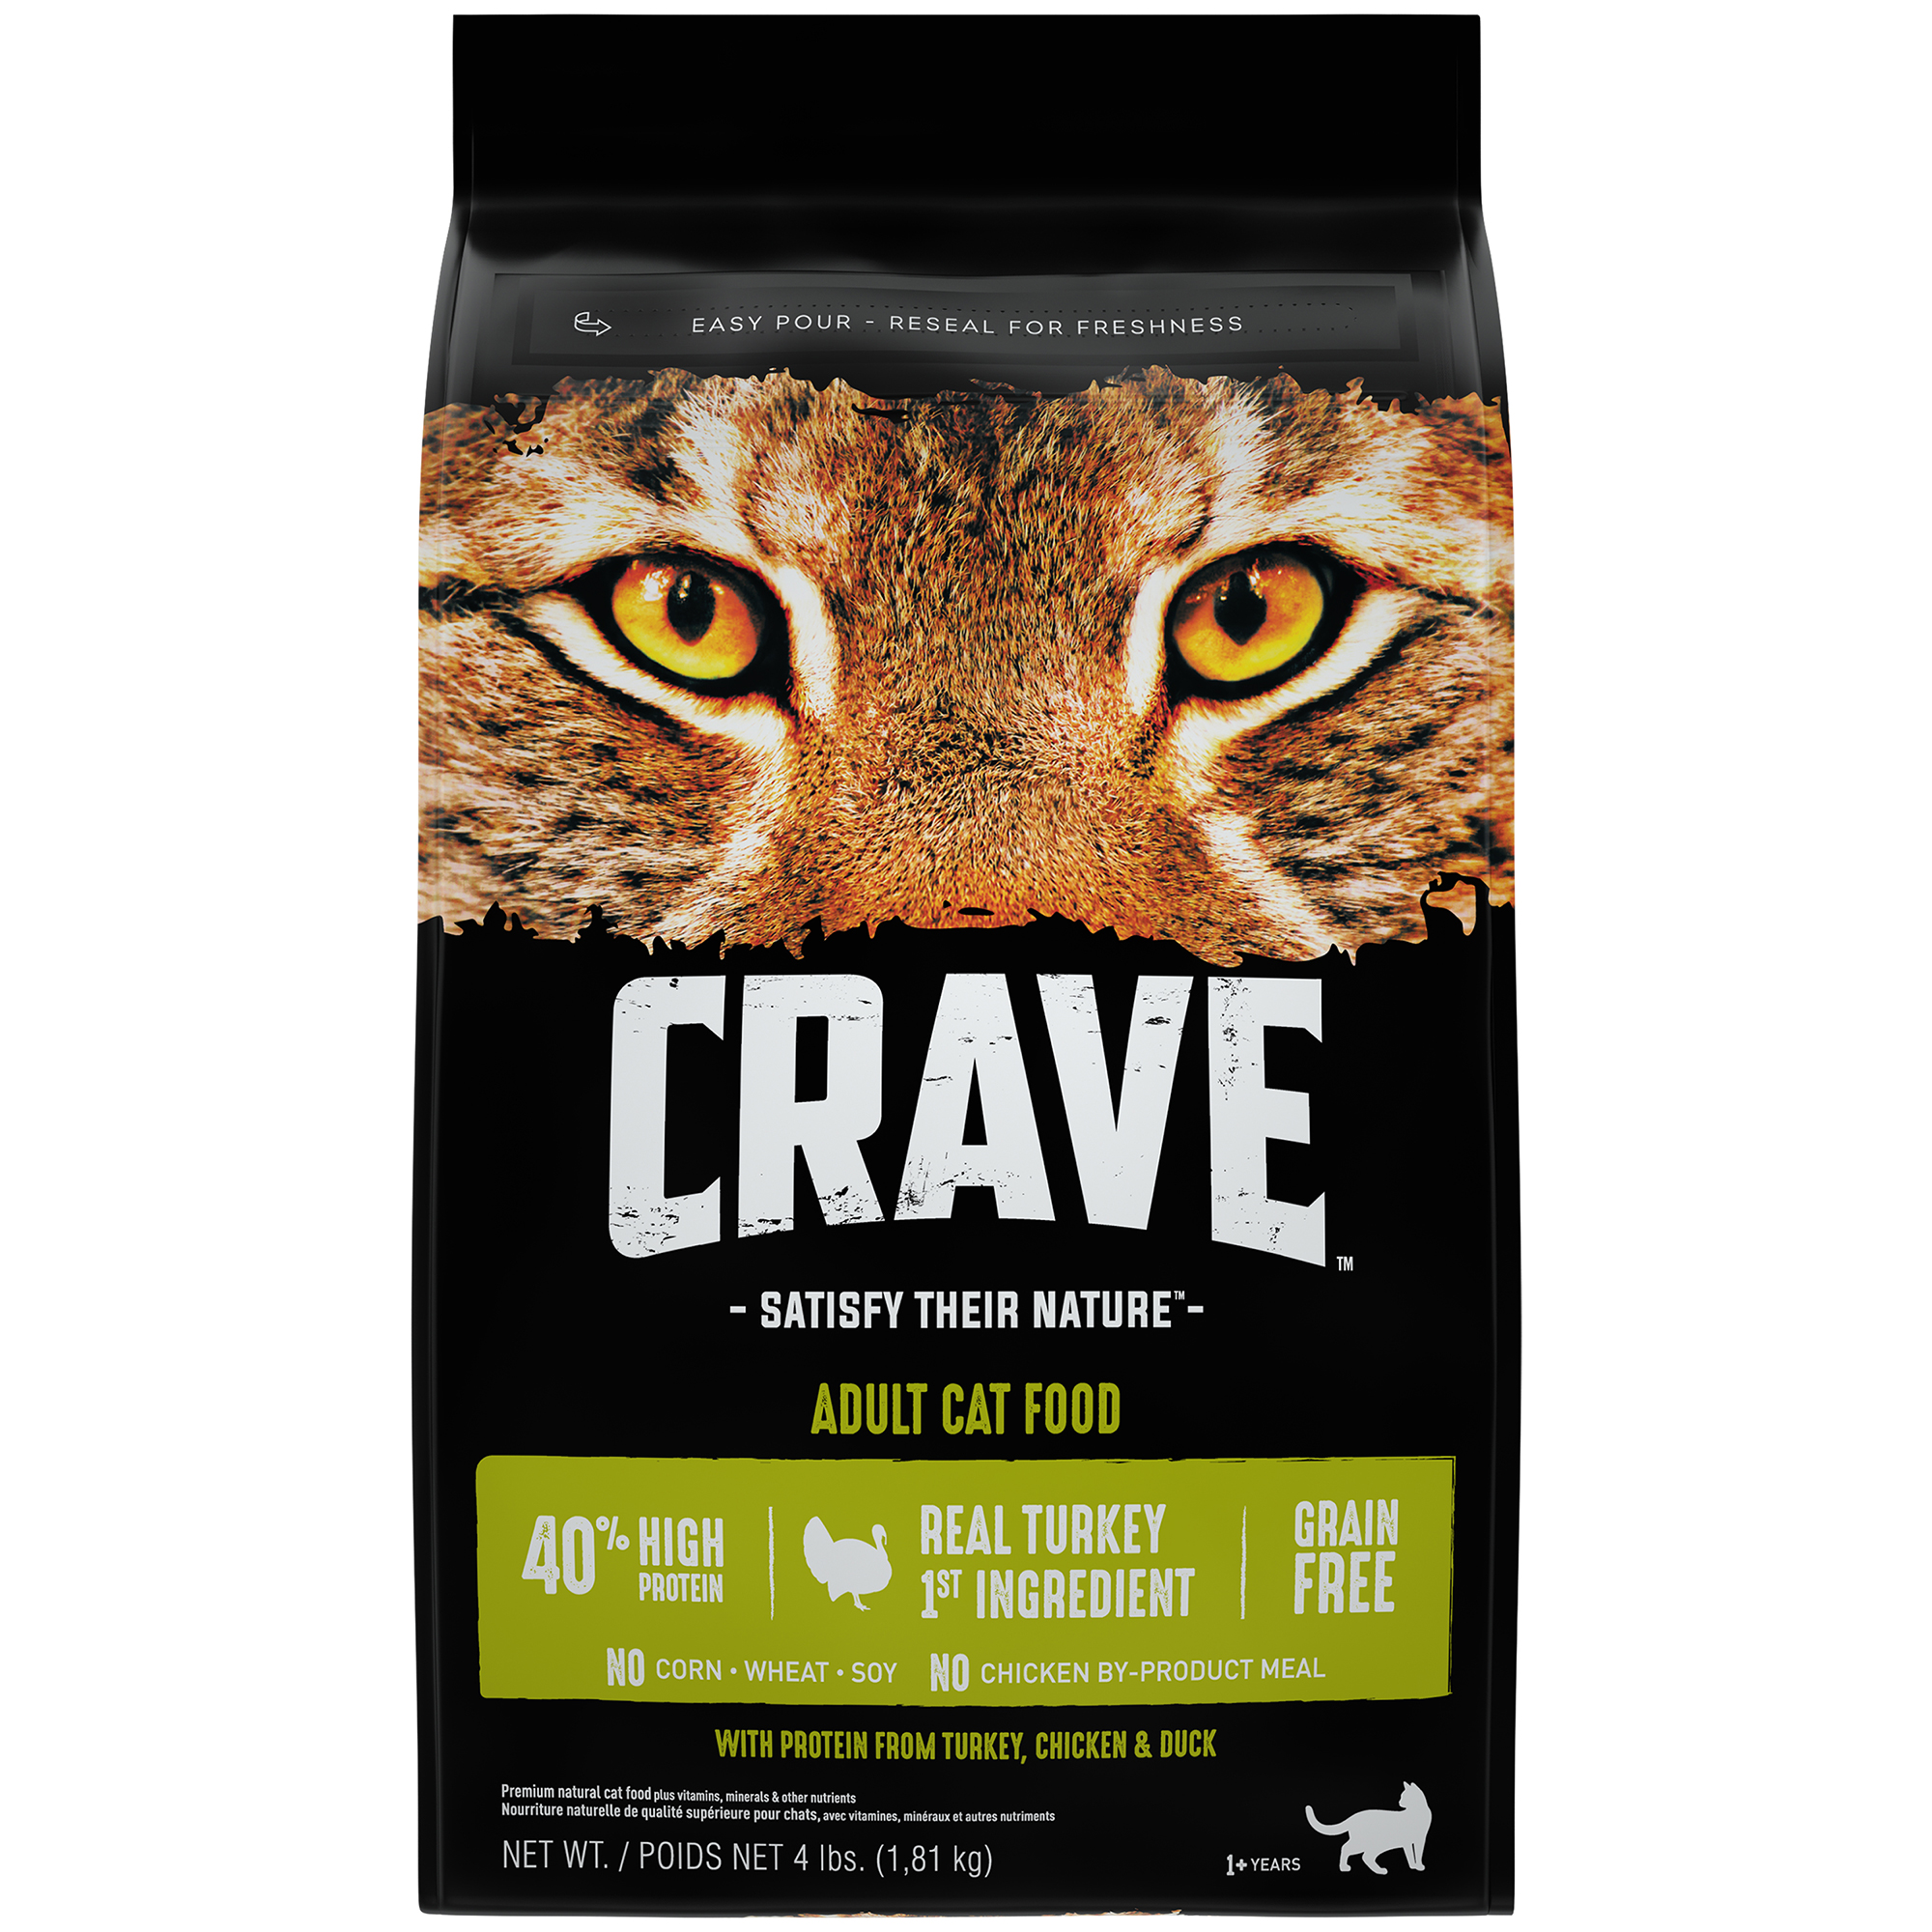 Crave Grain-Free with Protein form Turkey, Chicken & Duck Adult Dry Cat Food, 4 lb